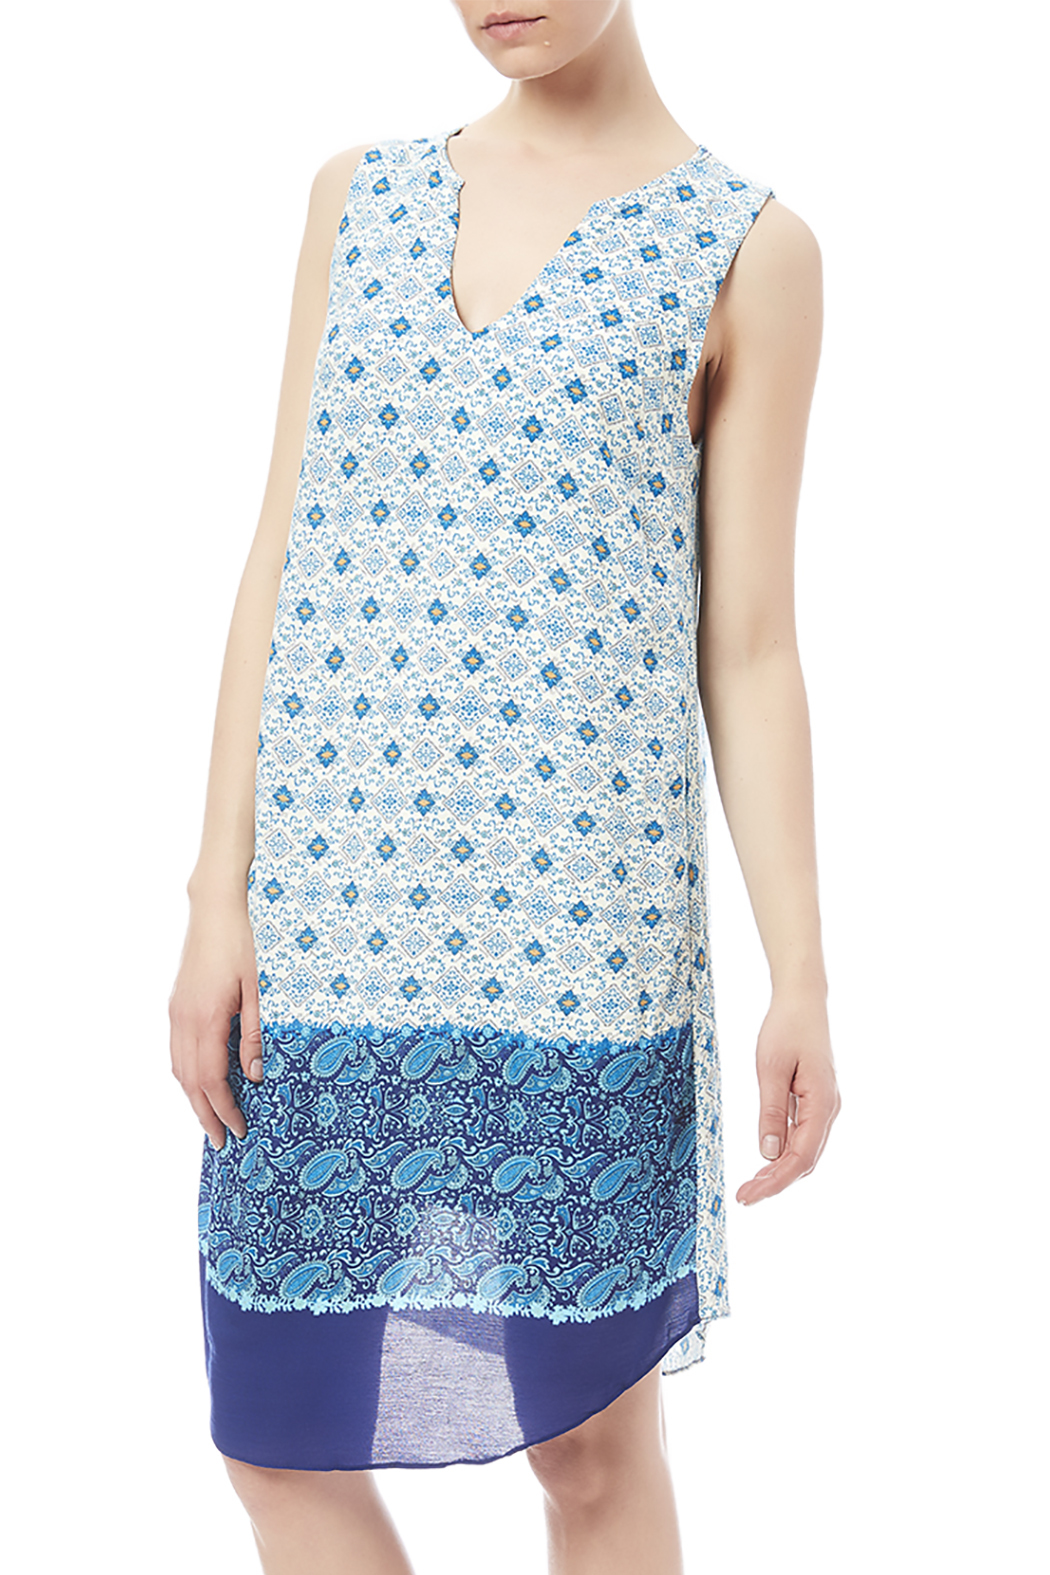 Renee C Grecian Summer Shift Dress - Front Cropped Image